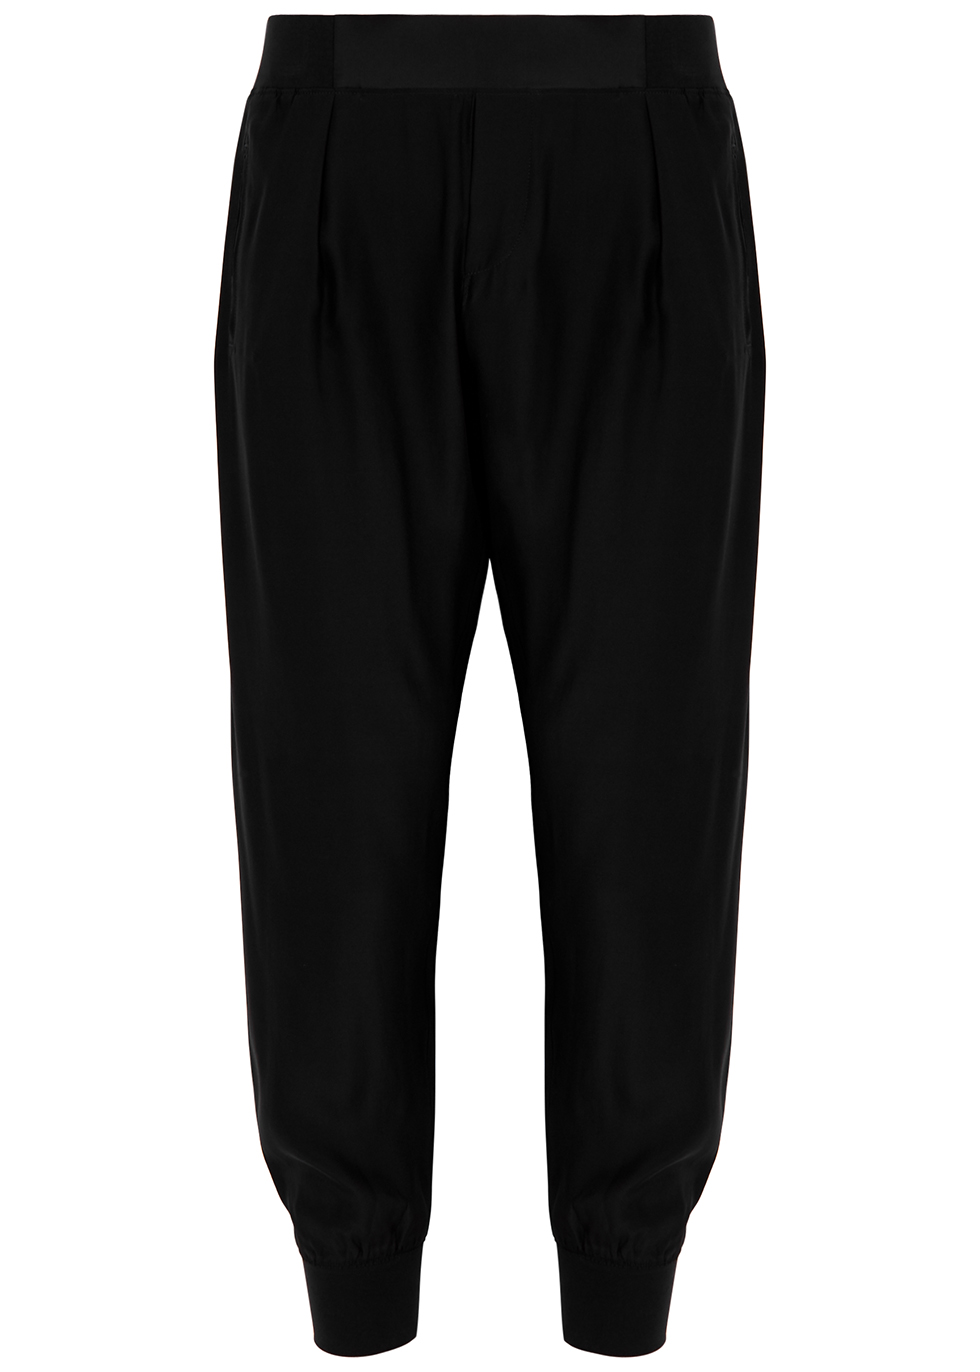 Black silk trousers